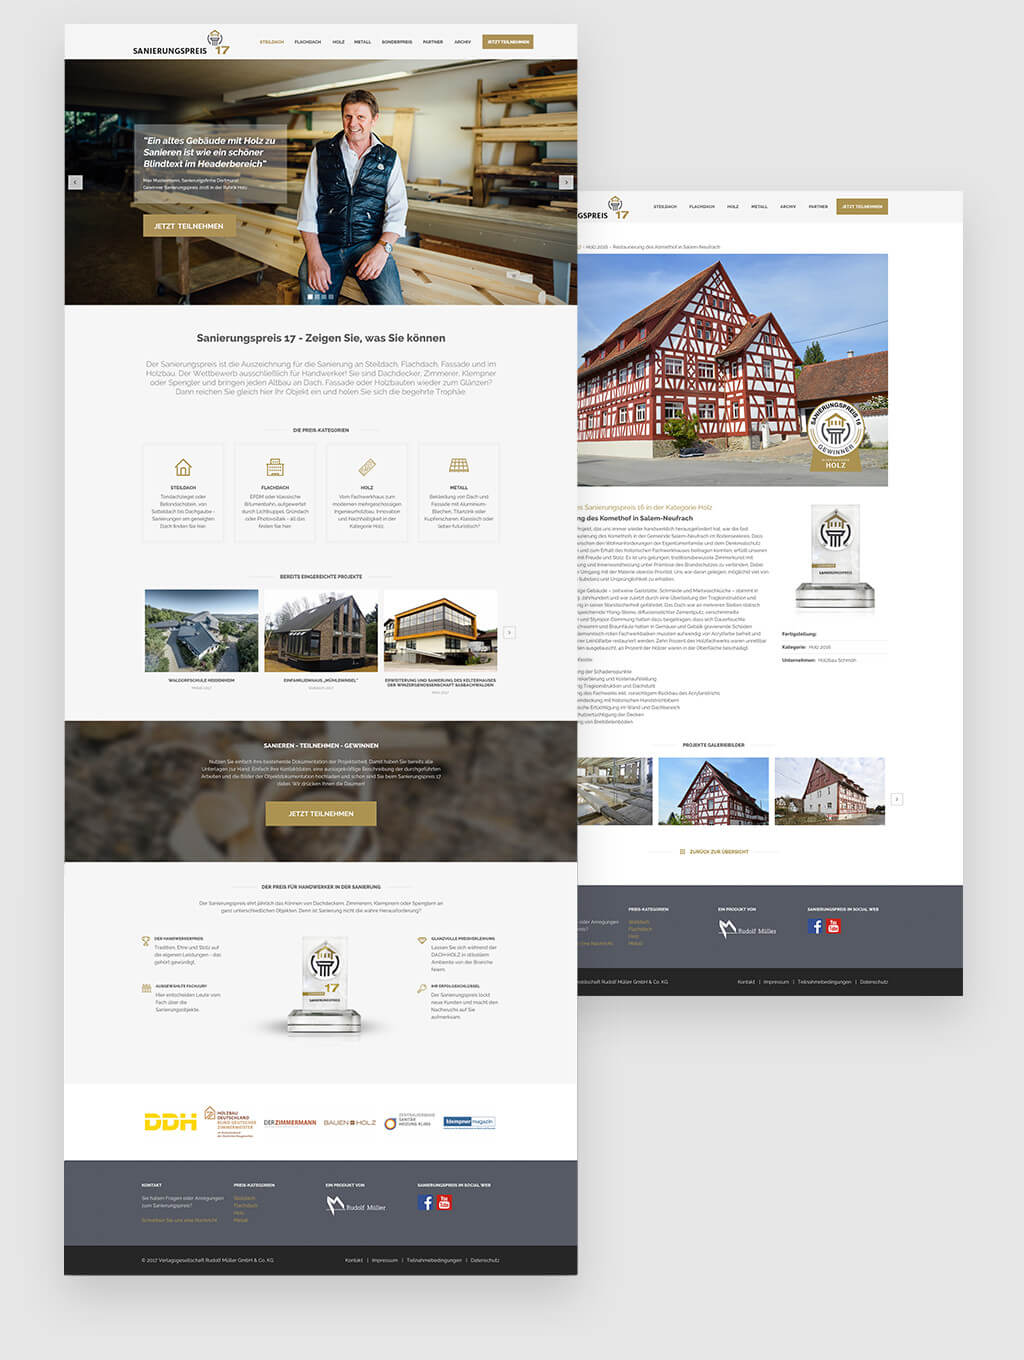 Website Relaunch Screendesign Sanierungspreis 2017 von Thomas Schiffmann Freelance Designer aus Köln